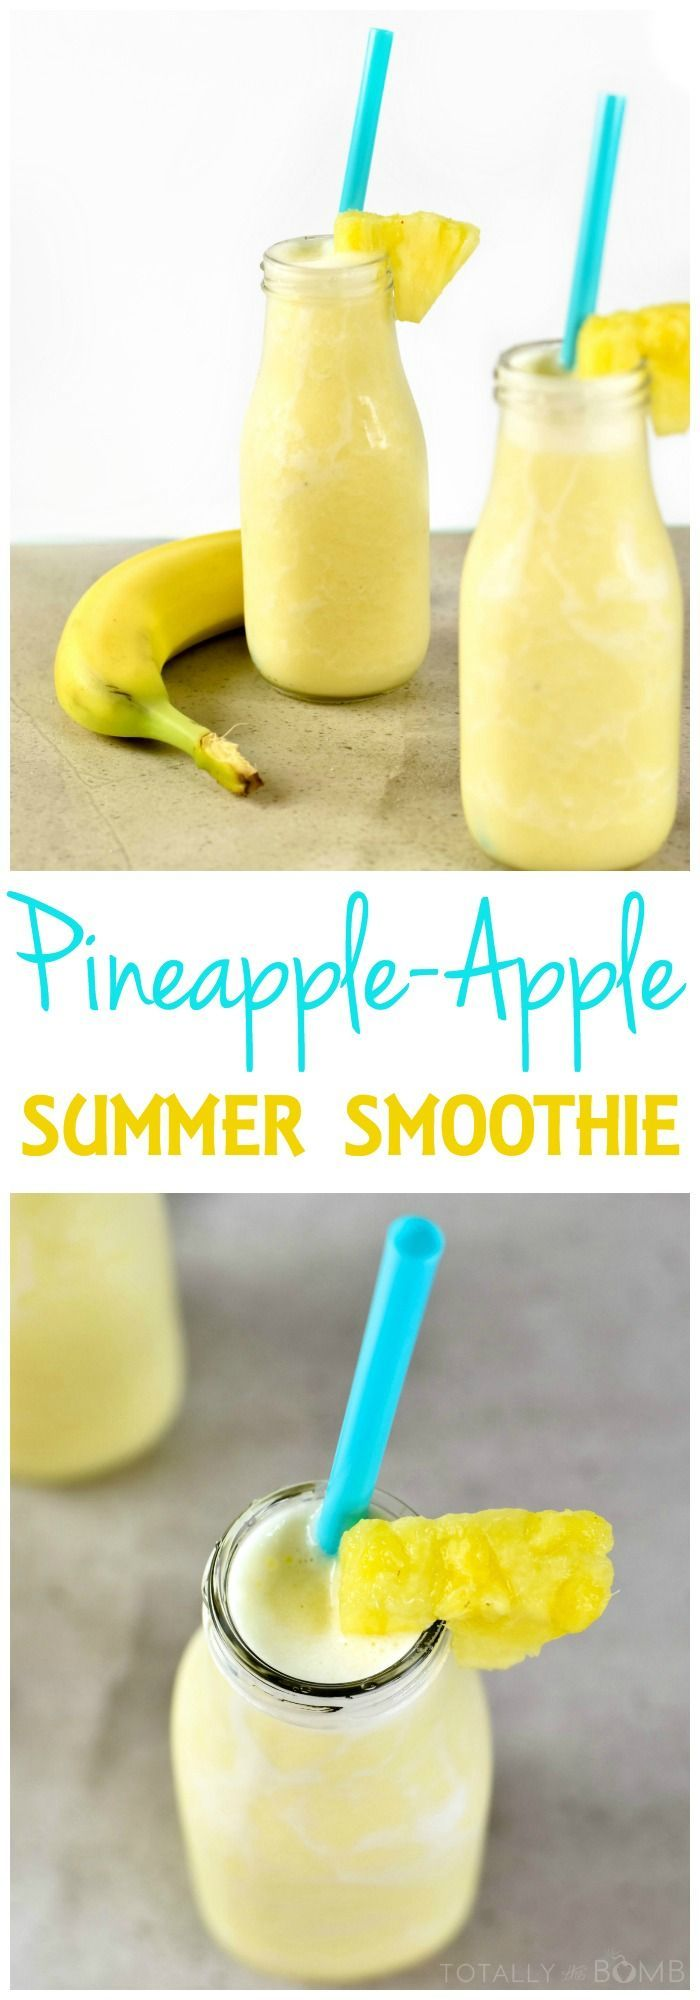 Pineapple-Apple Summer Smoothie